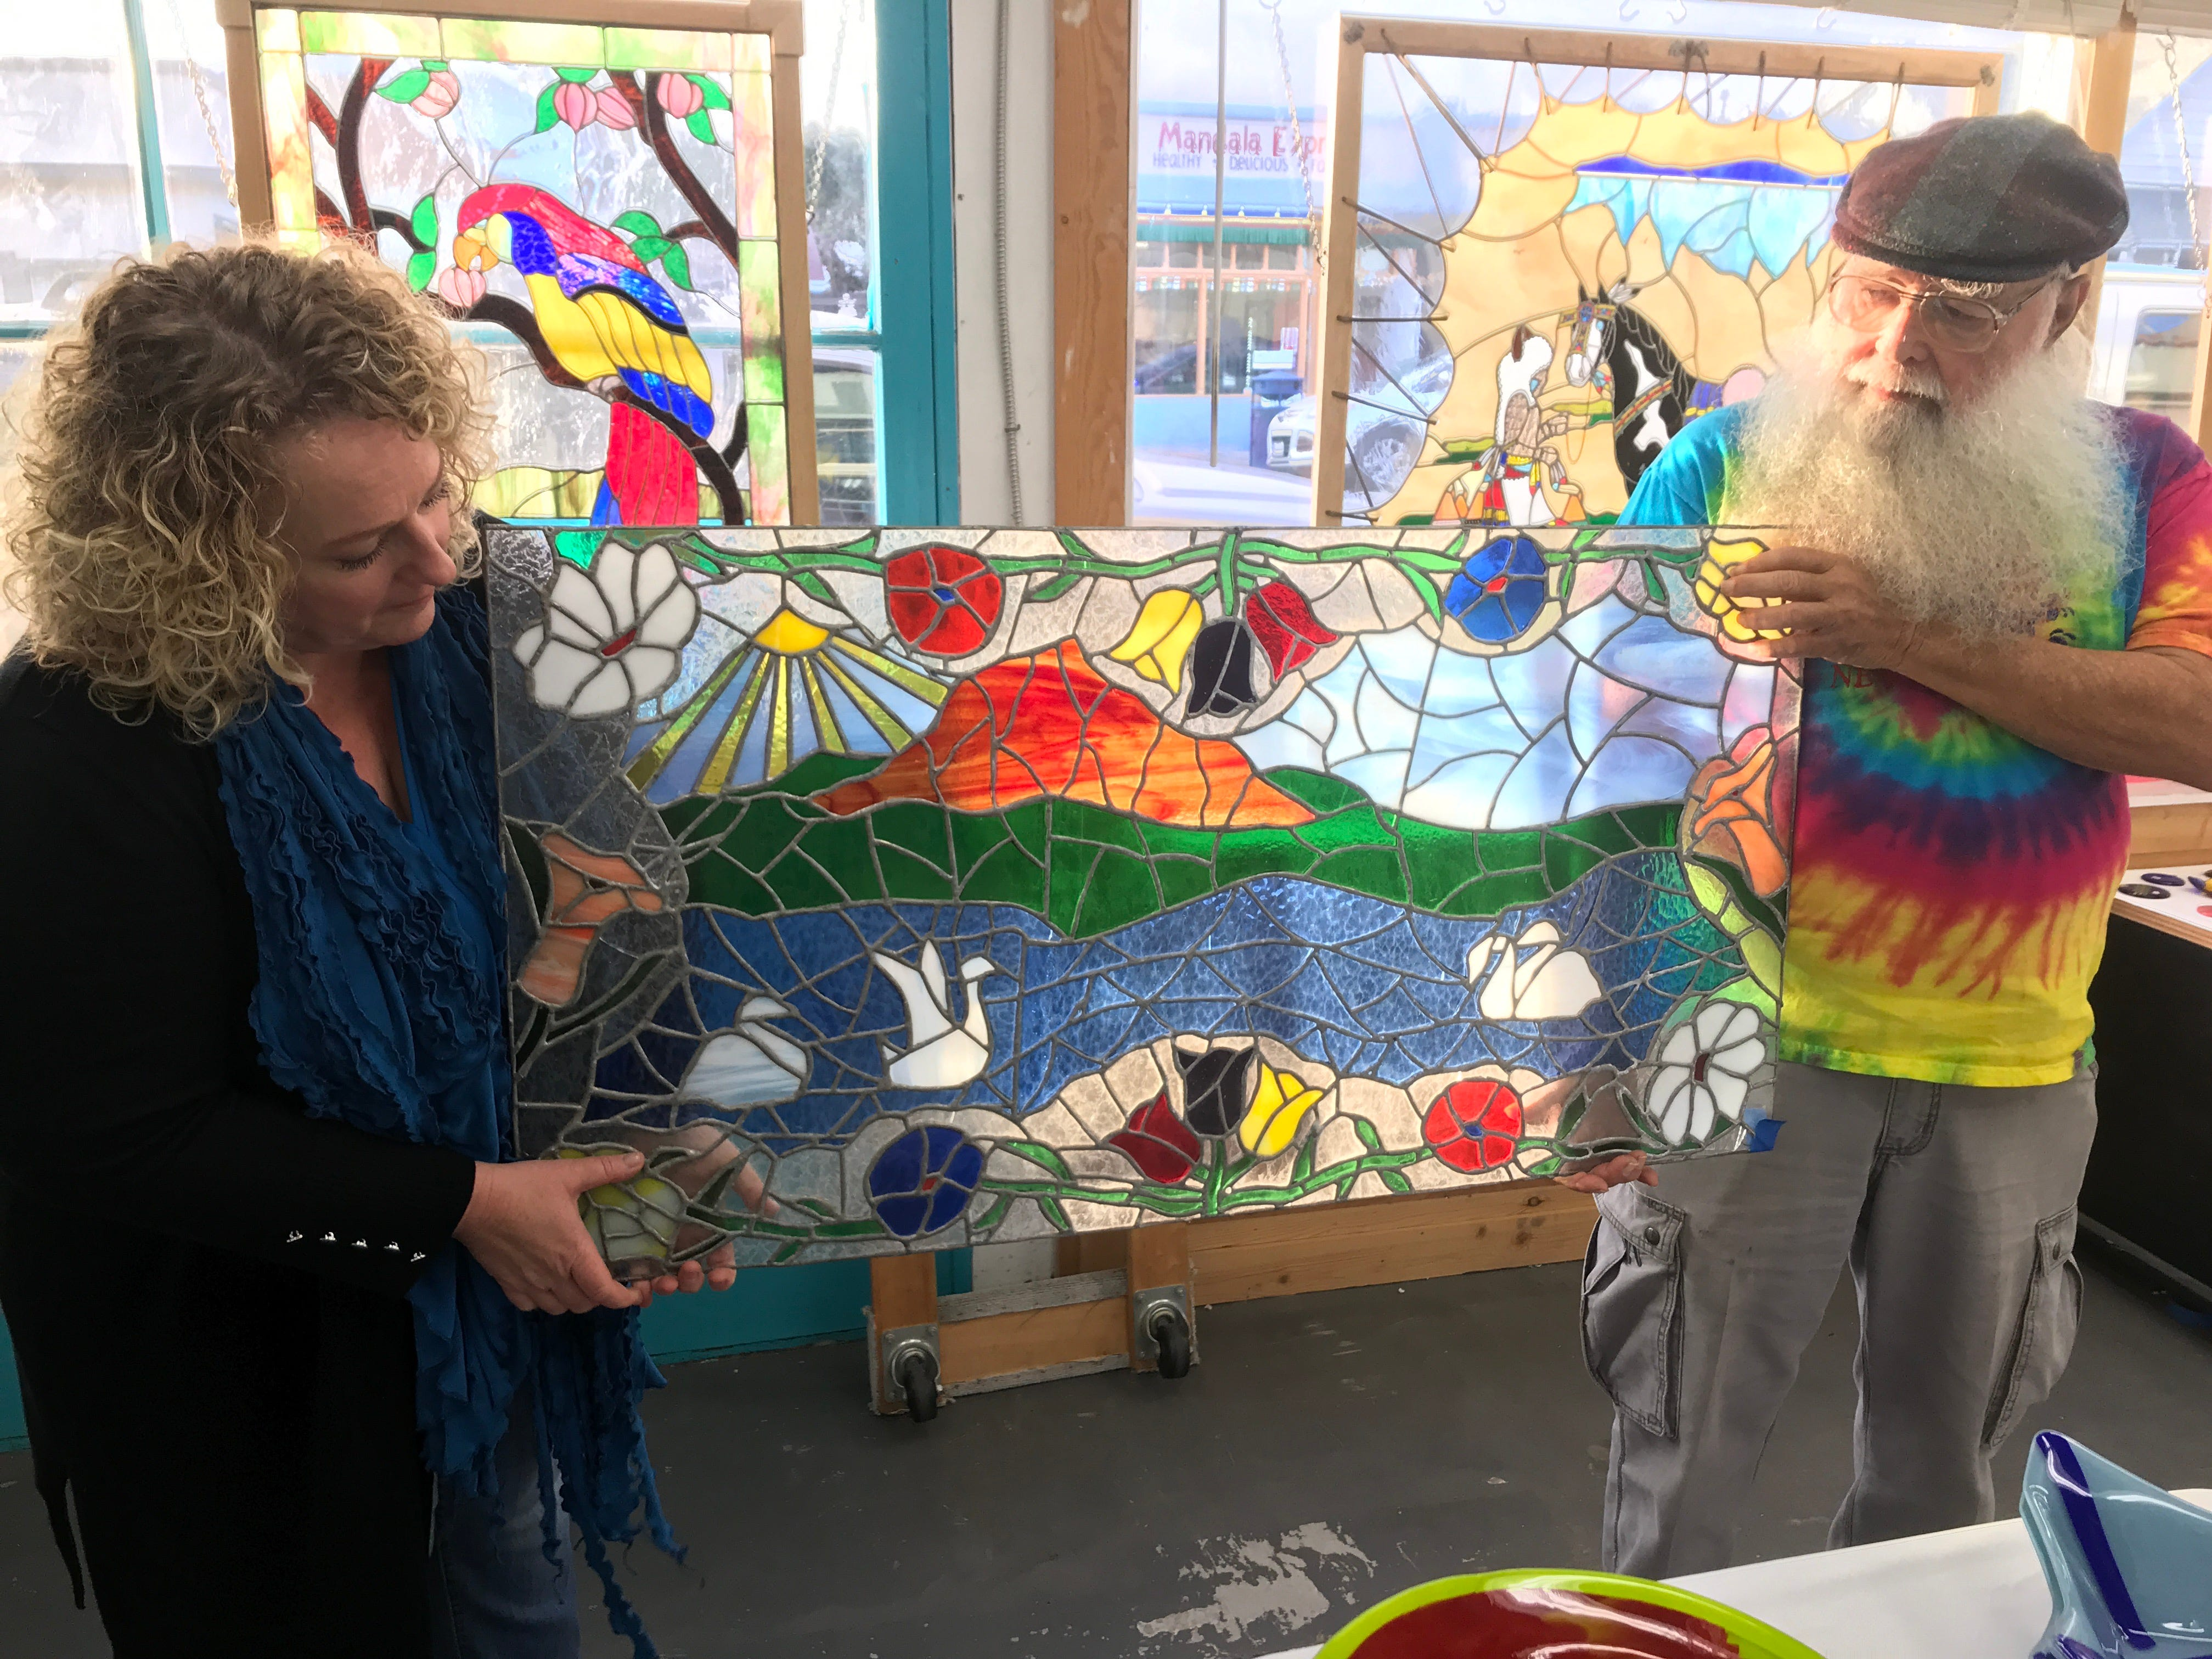 "Glass artist Beglar ""Chief"" Merlich and his daughter, Jennifer, hold up the artist's first piece of work. Merlich created it around 1980 for his then-wife who wanted something nice to hang in their new house. It sparked Merlich's decades-long glass art career."